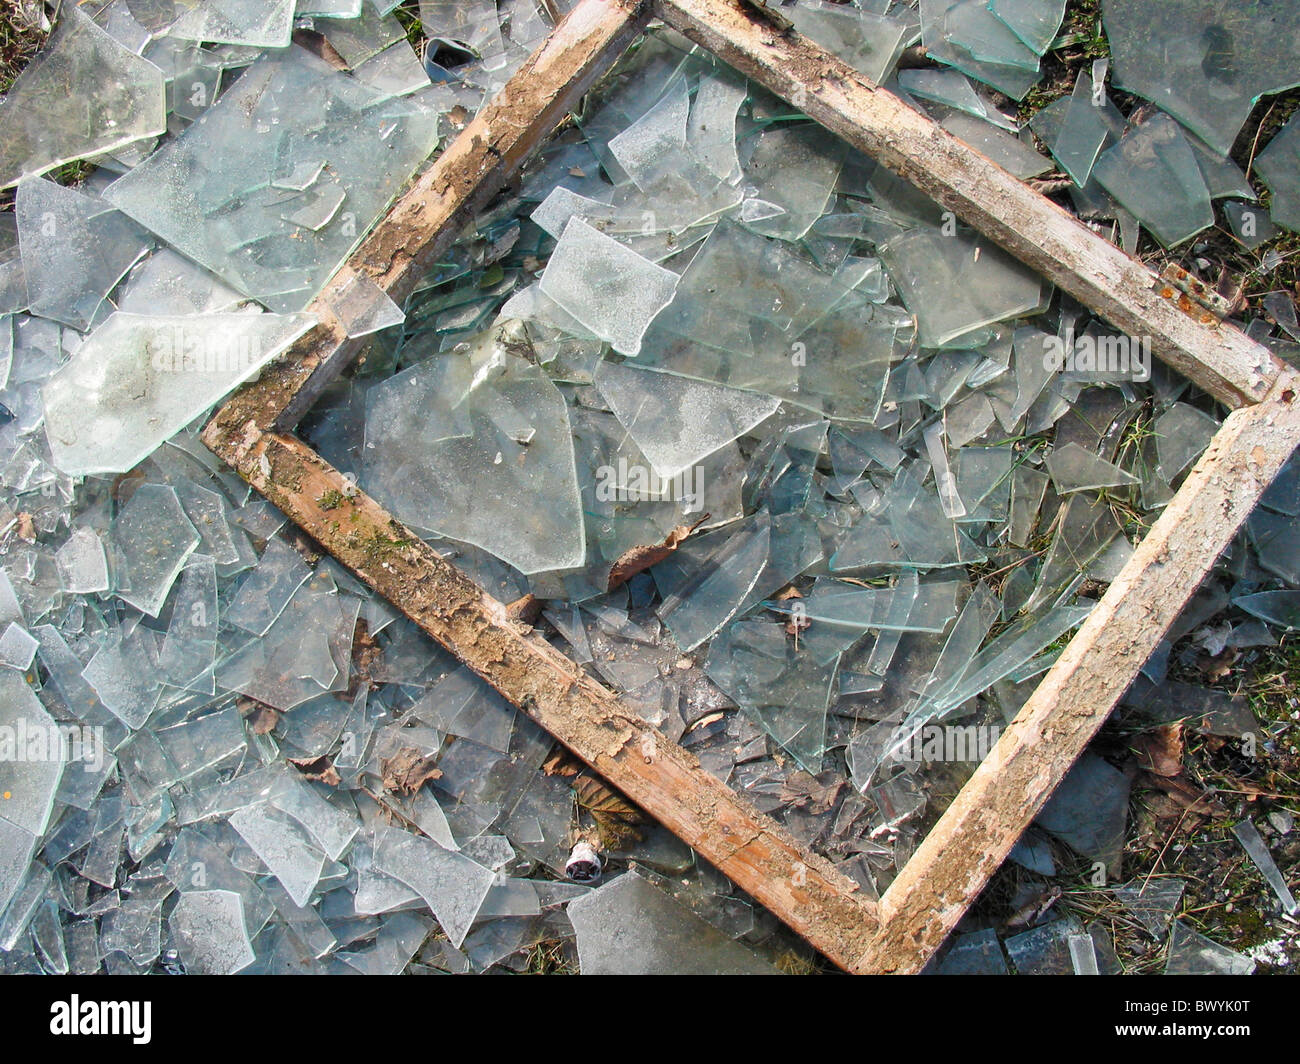 Images of a broken picture frame